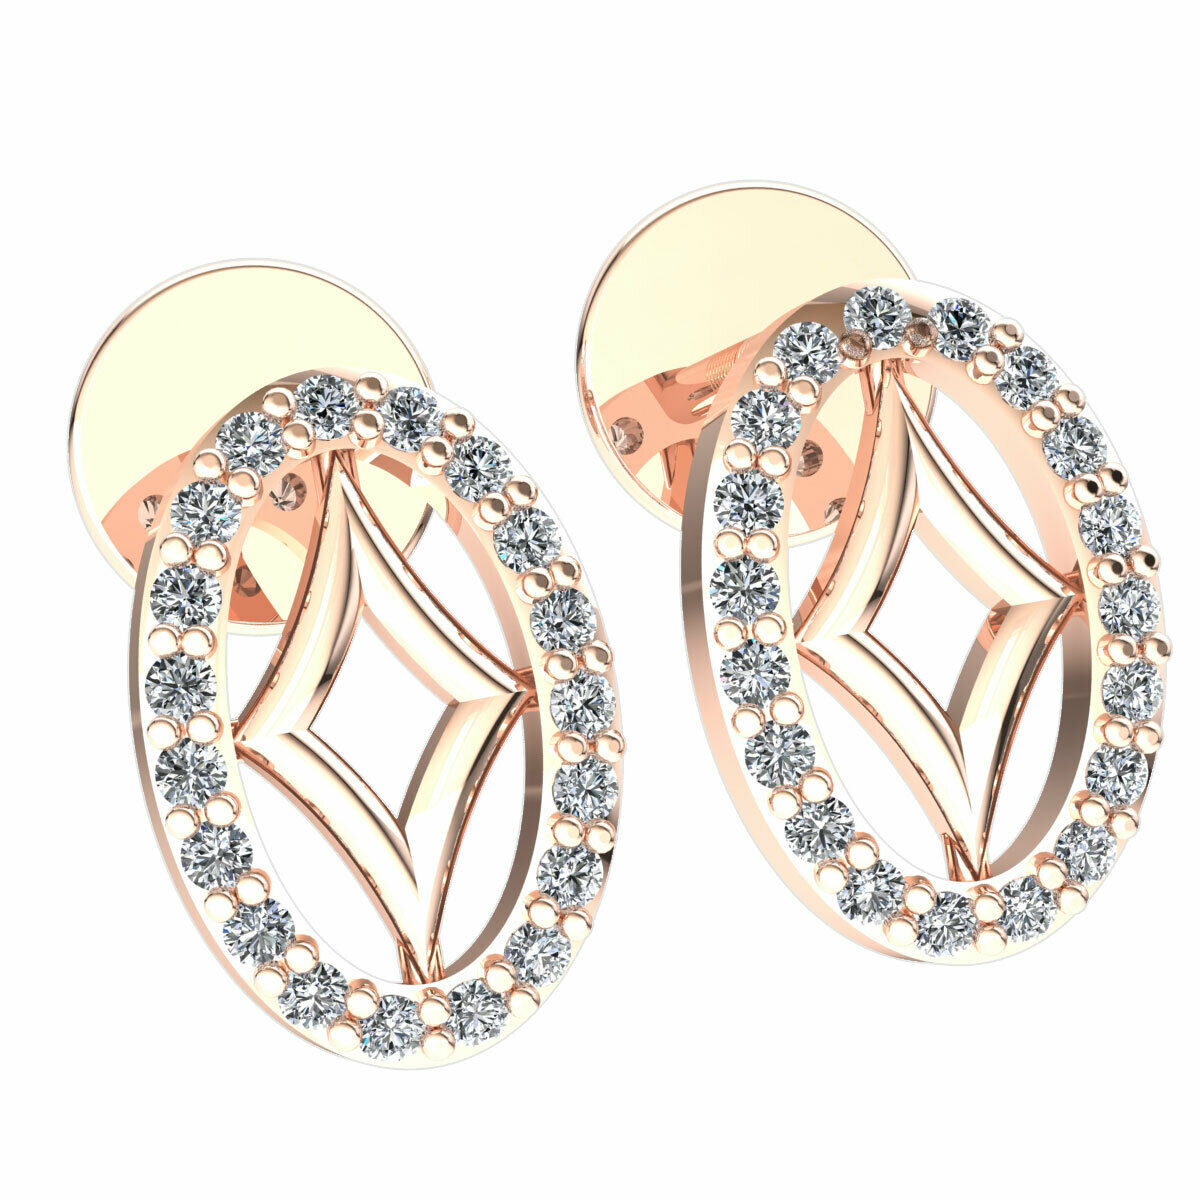 0.1carat Round Cut Diamond Ladies Oval Kite Drop Earrings Solid 14K gold